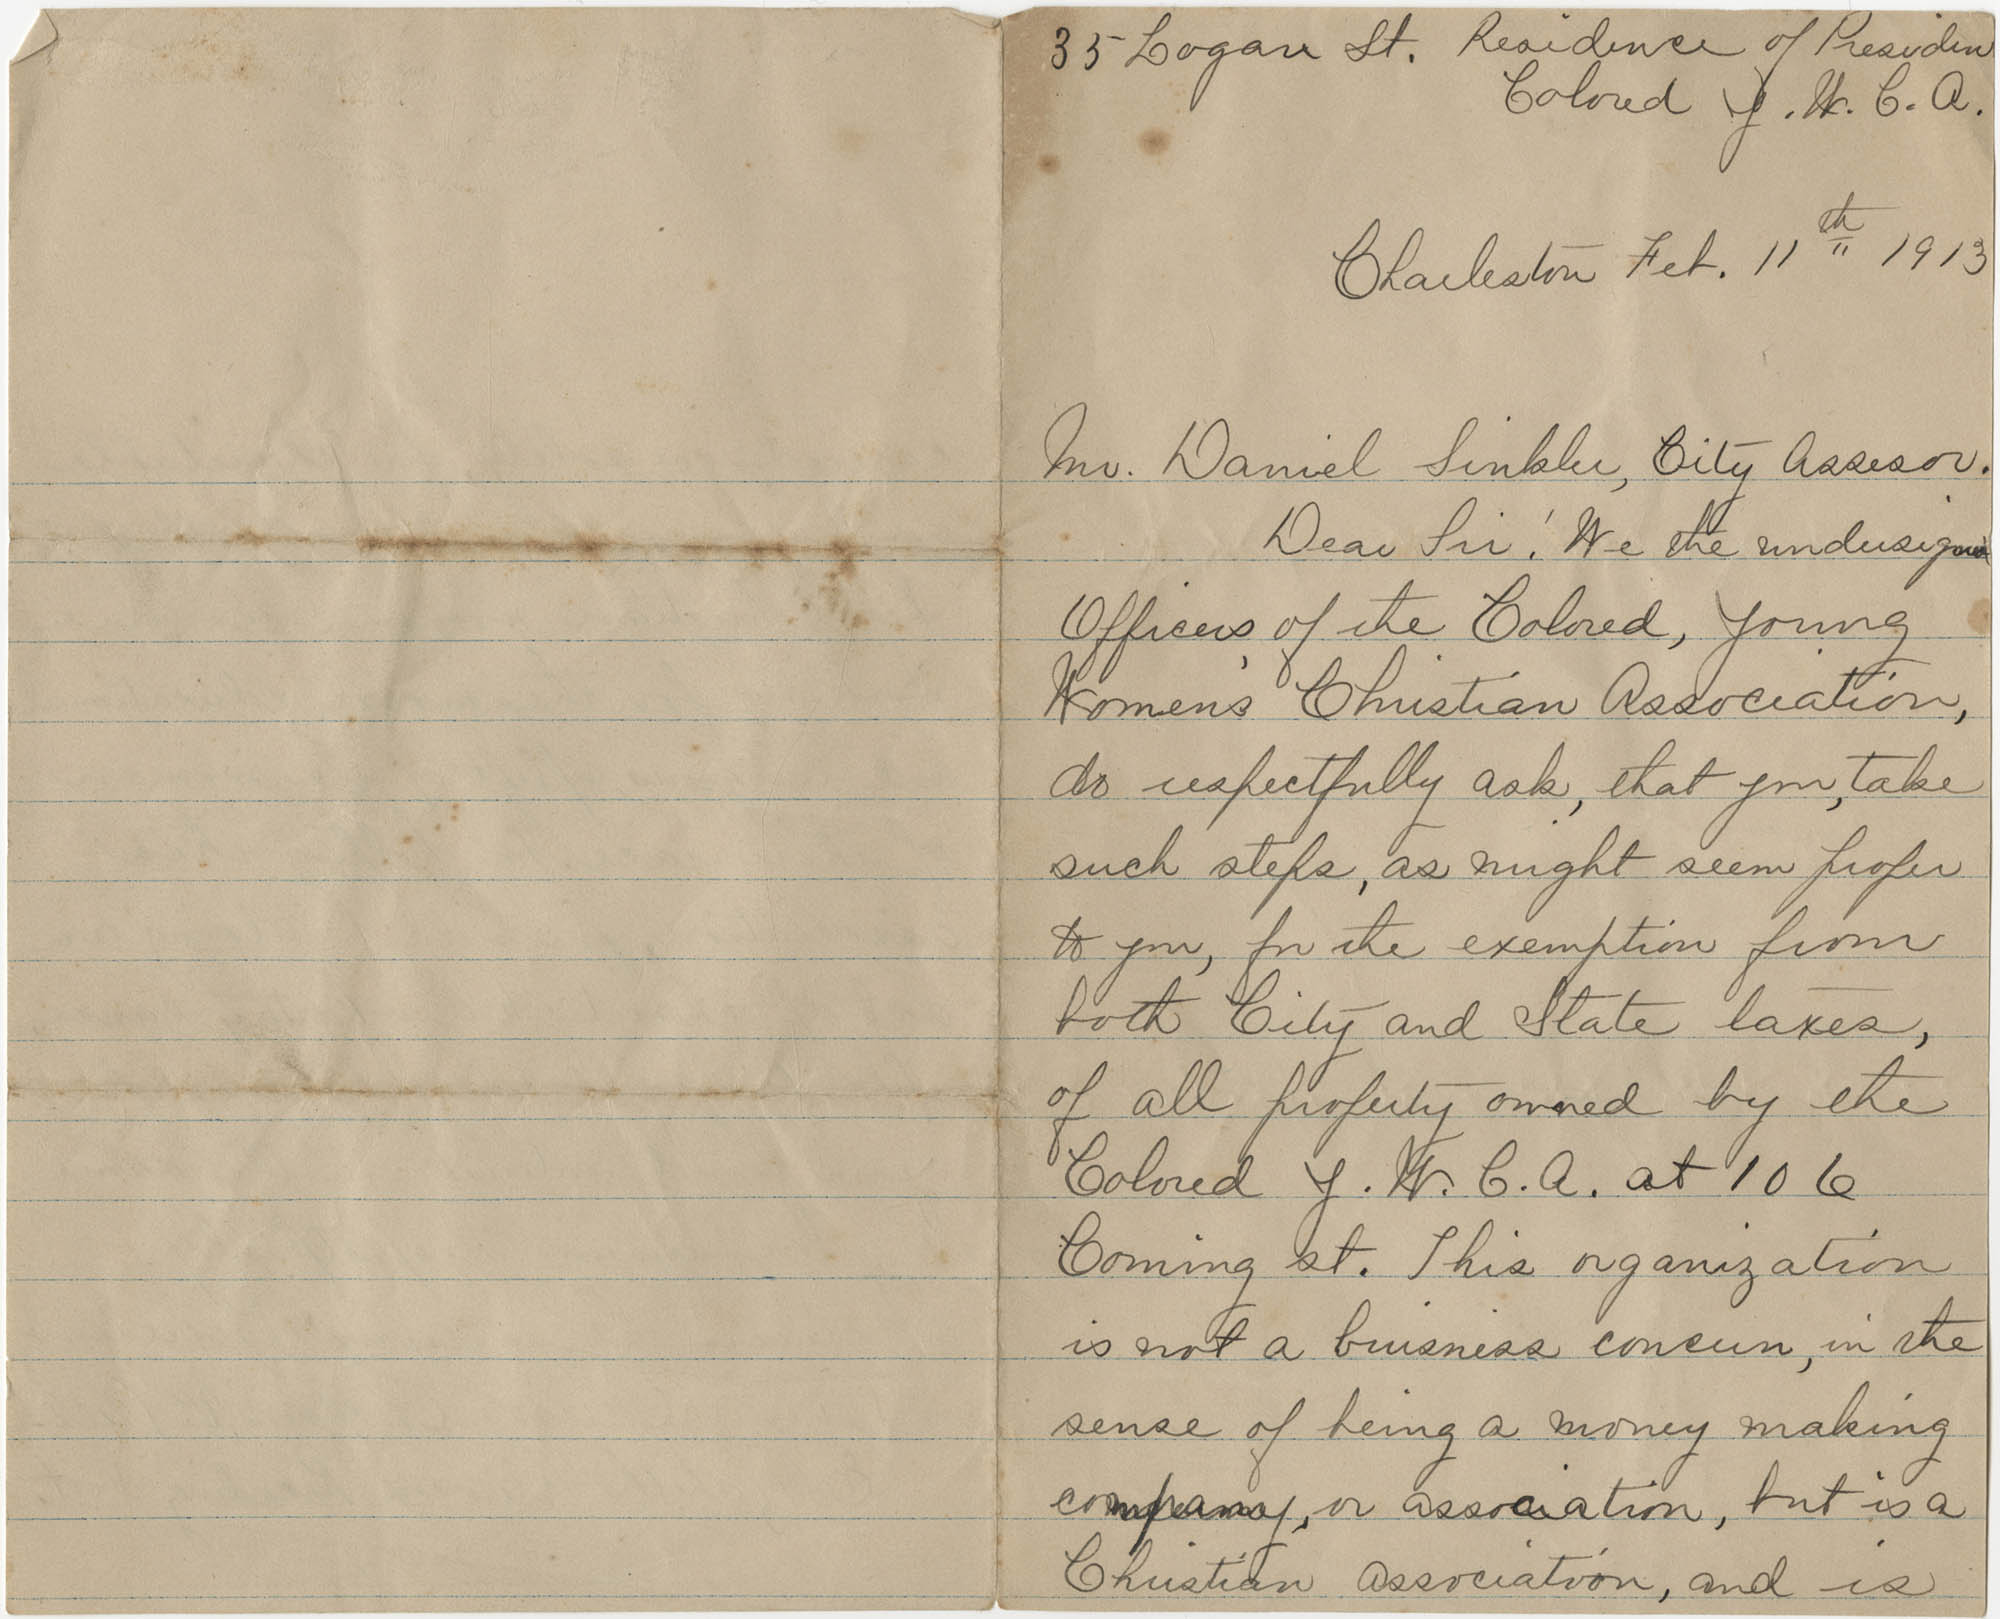 Letter from Felicia Goodwin to Daniel Sinkler, February 11, 1913